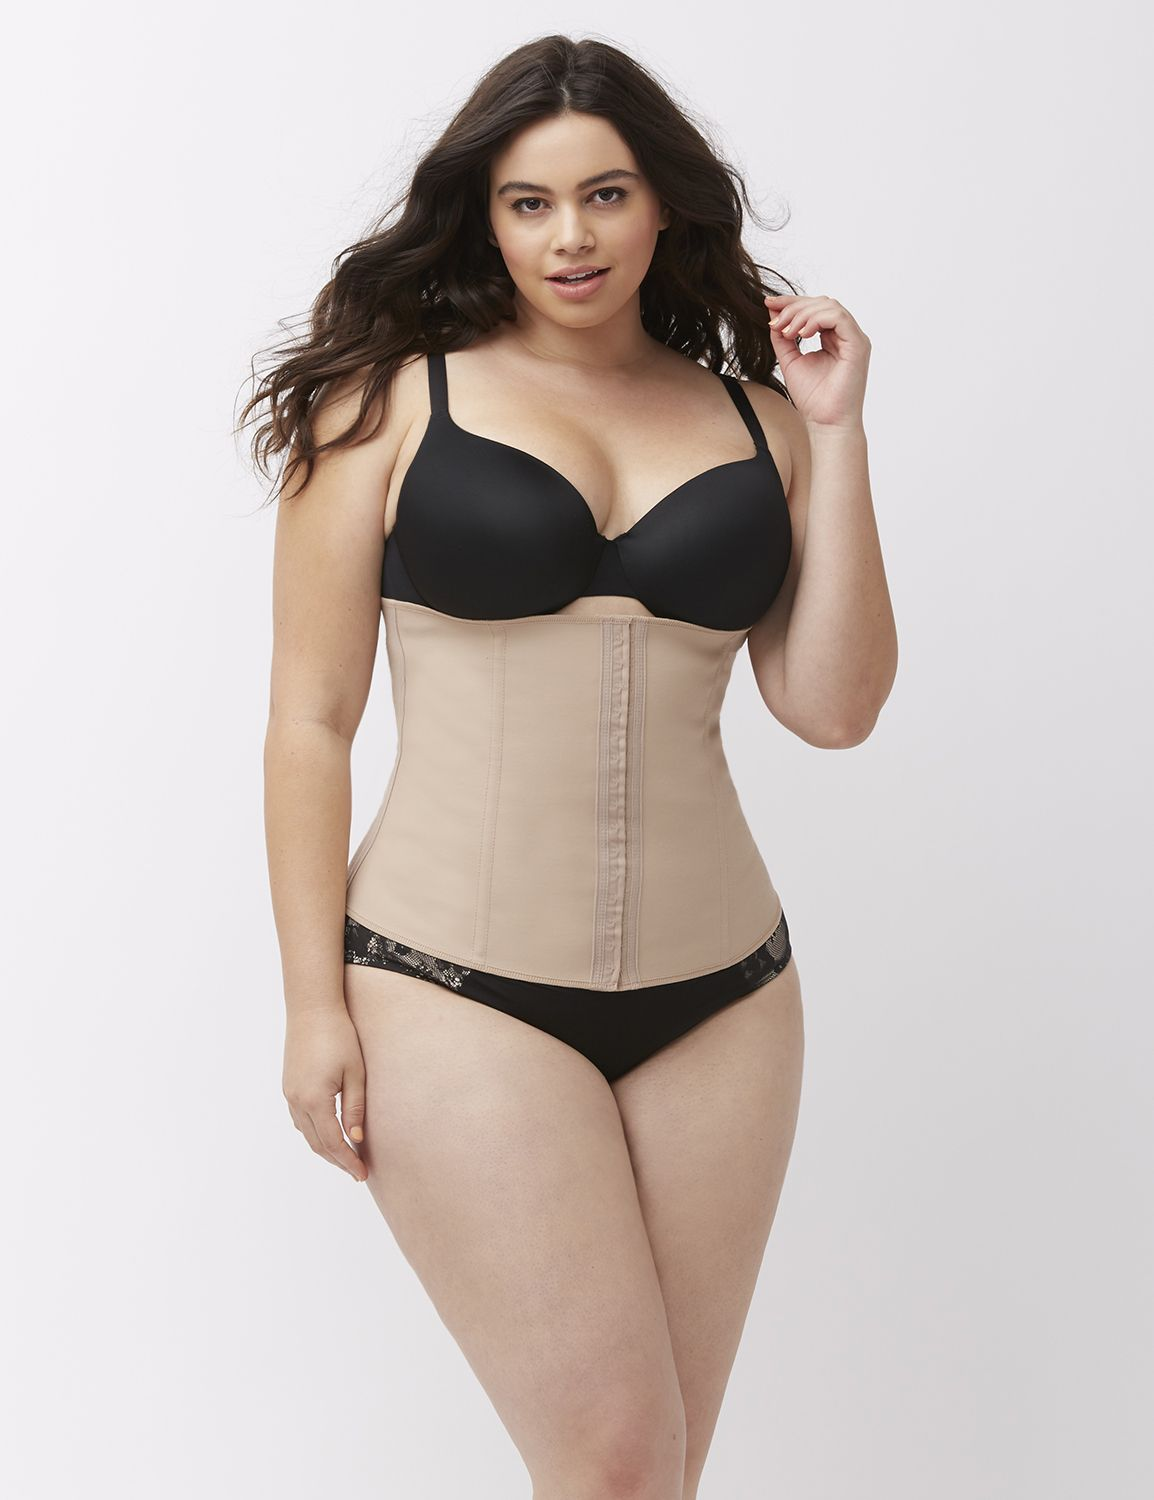 Online Exclusive Lane Bryant Sexi Lingerie Perfect Waist Contouring Cincher By Squeem